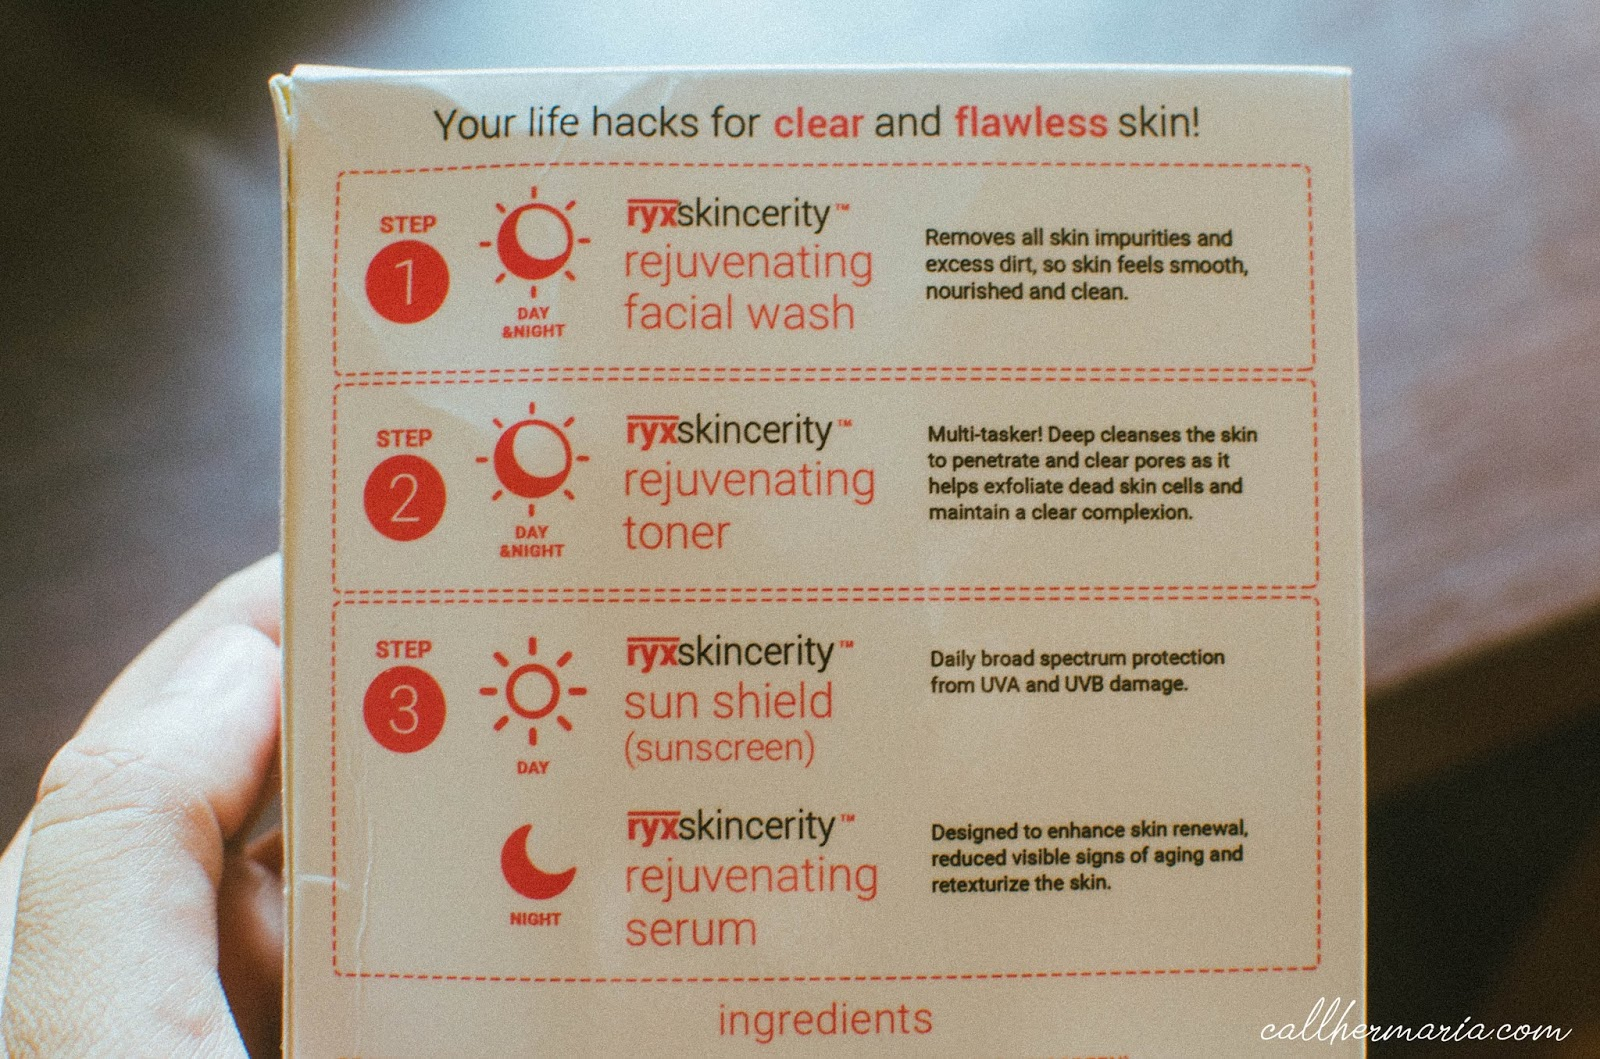 How to use Ryx Skincerity